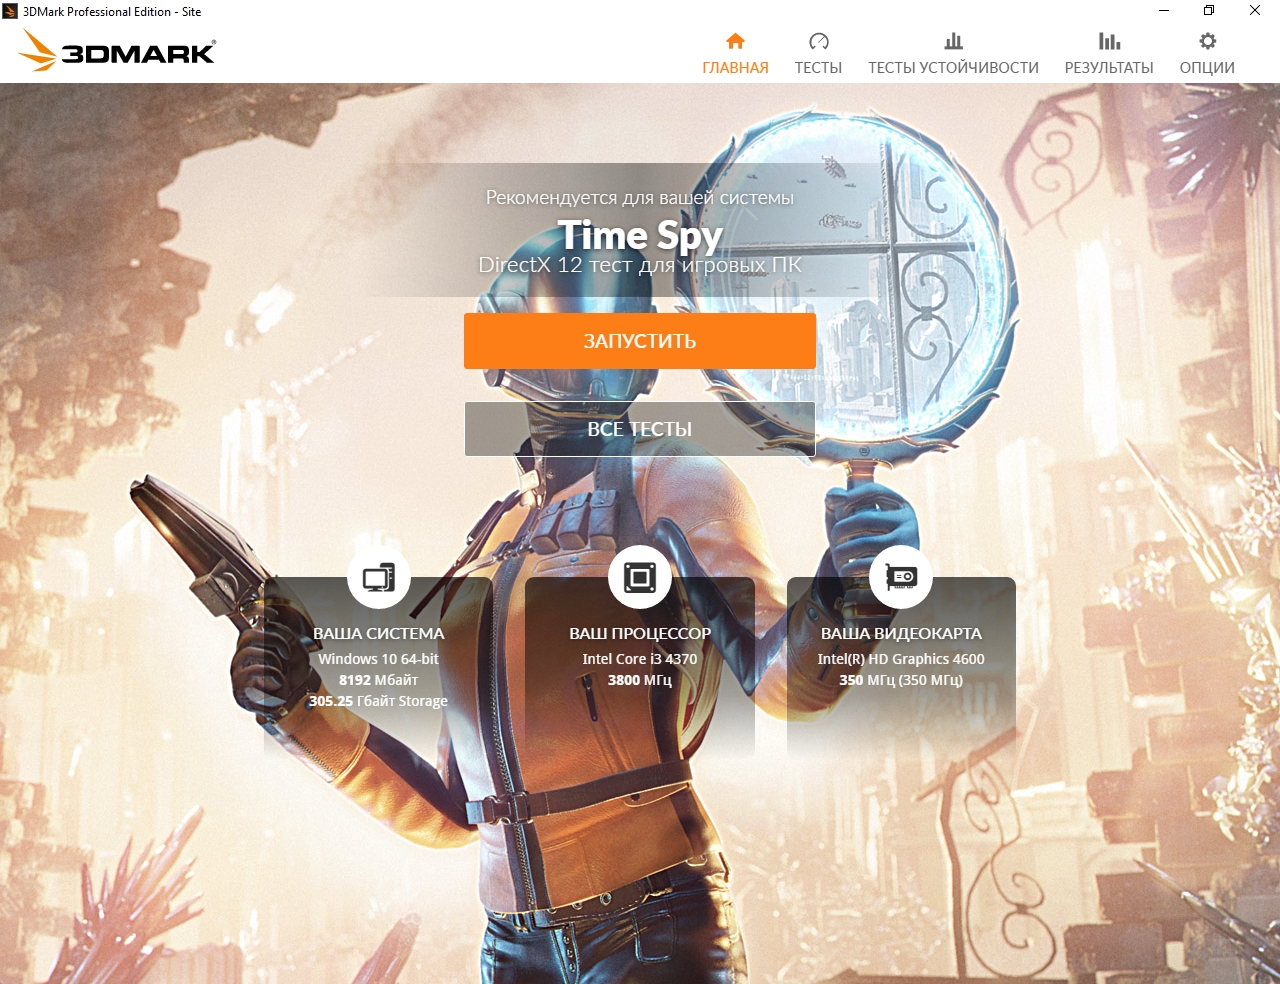 Futuremark 3DMark 2.3.3693 Professional Edition (2017) Multi / Русский